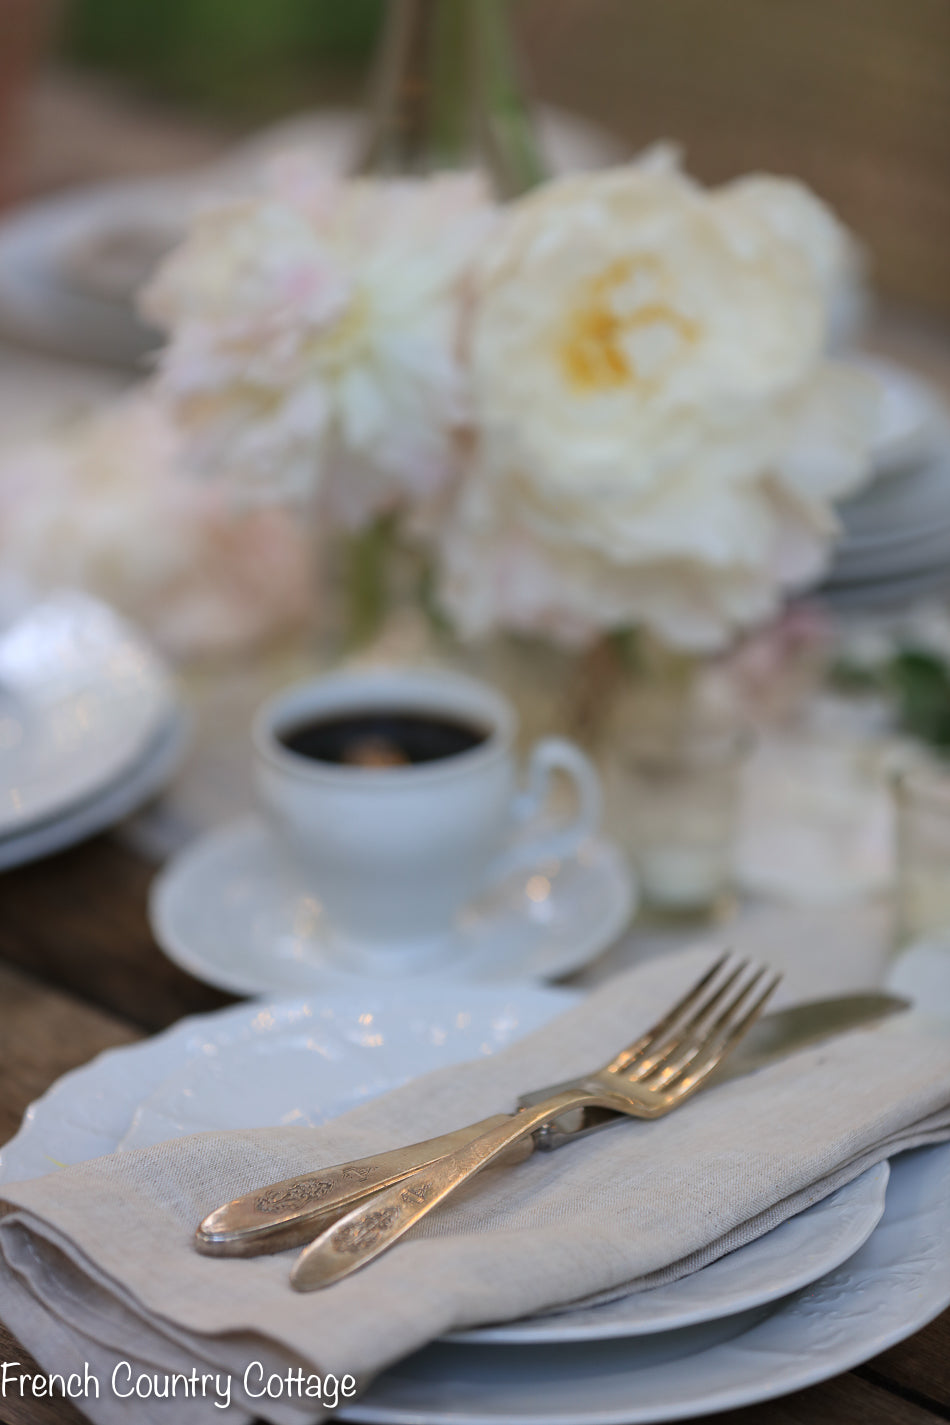 French Cottage 5 Piece Place Settings